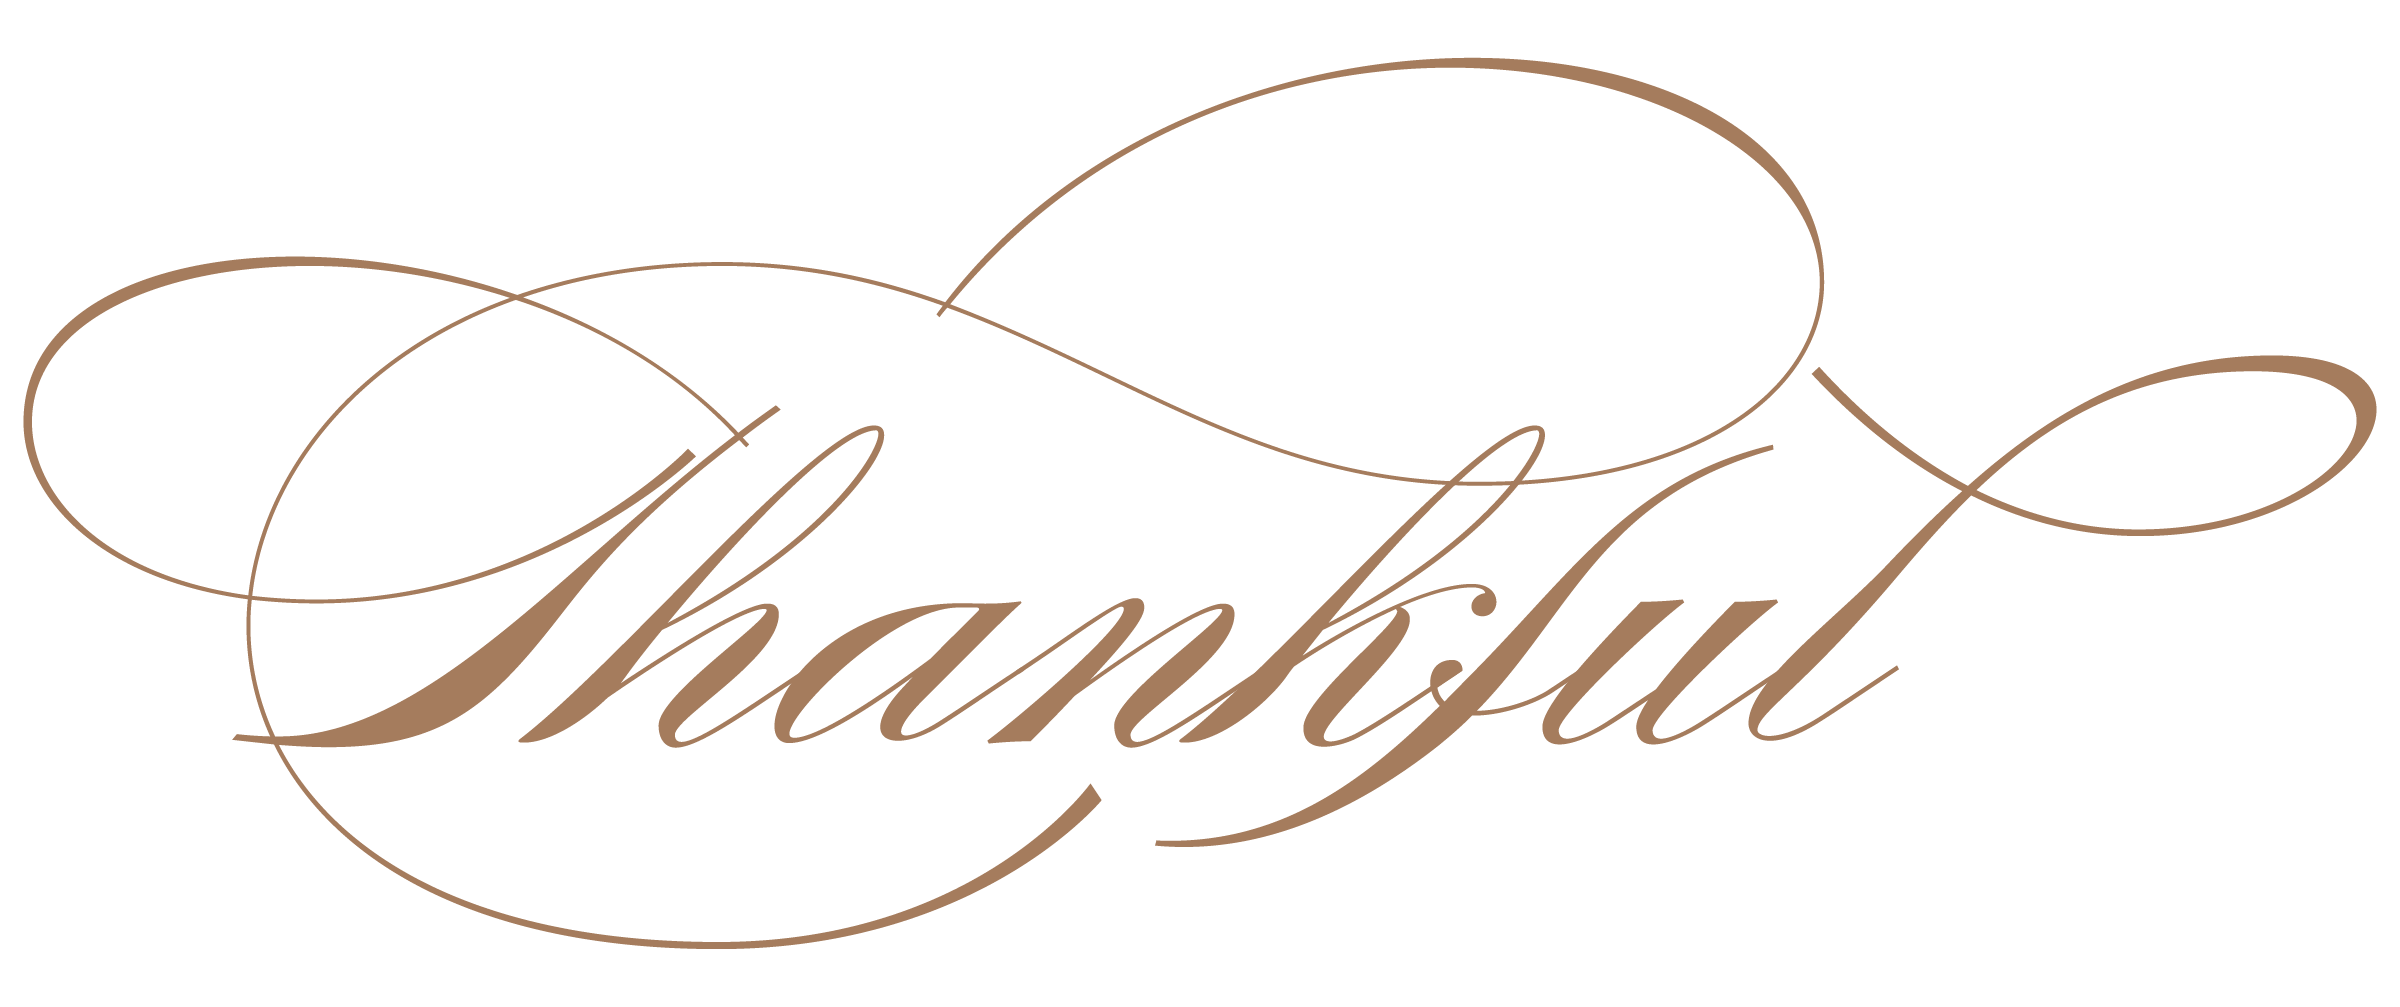 Thankful_Graphic-01.png